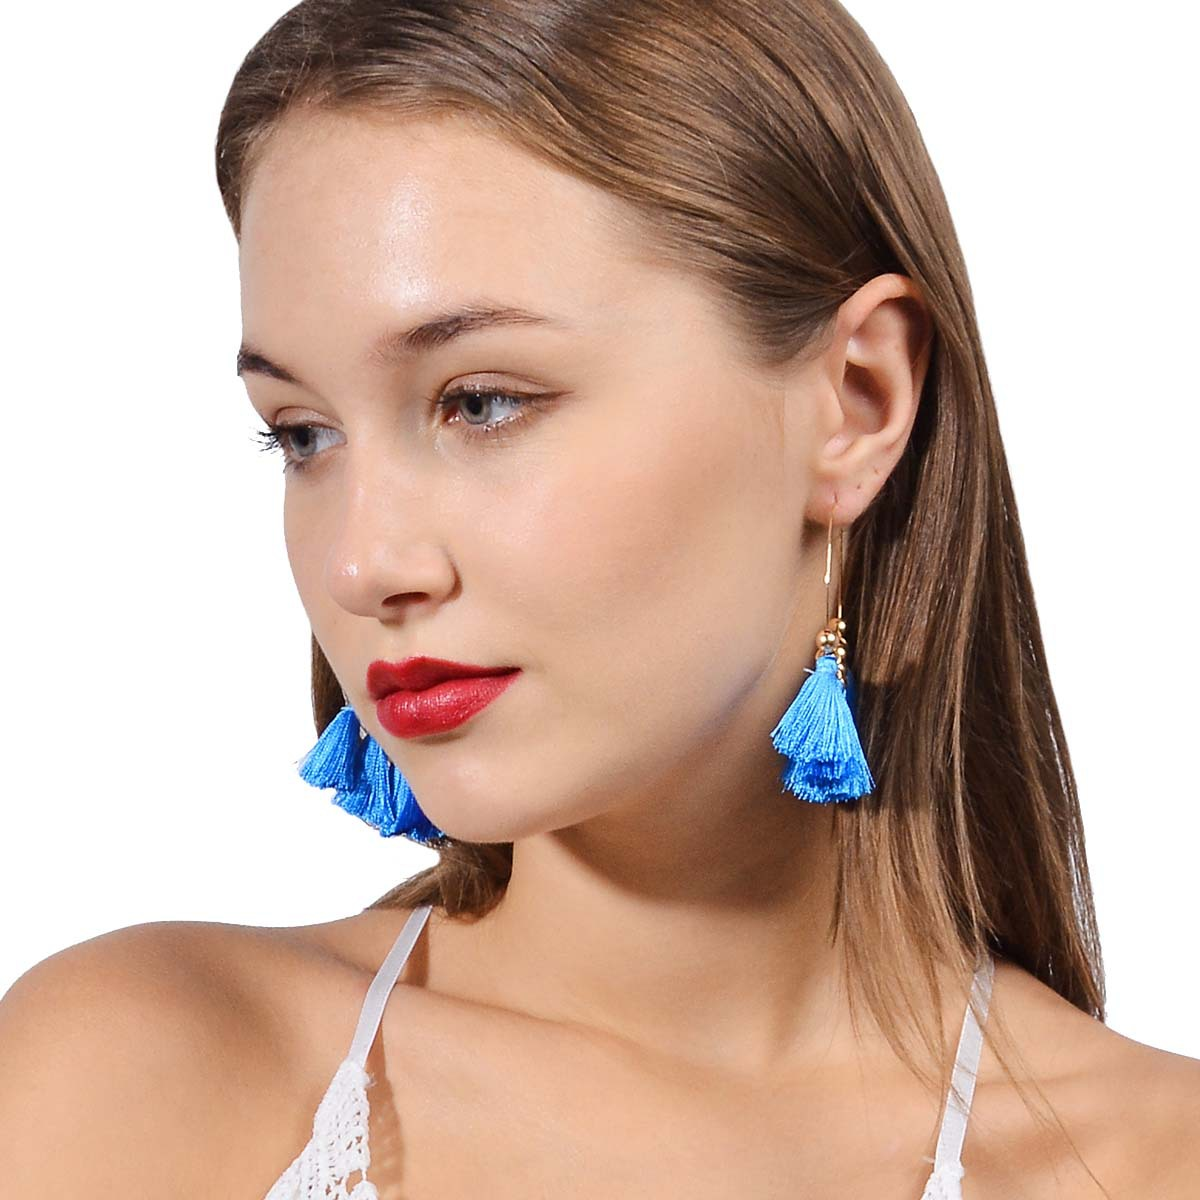 Occident and the United States alloy plating earring (B0803 rose red)NHXR1463-B0803 rose red